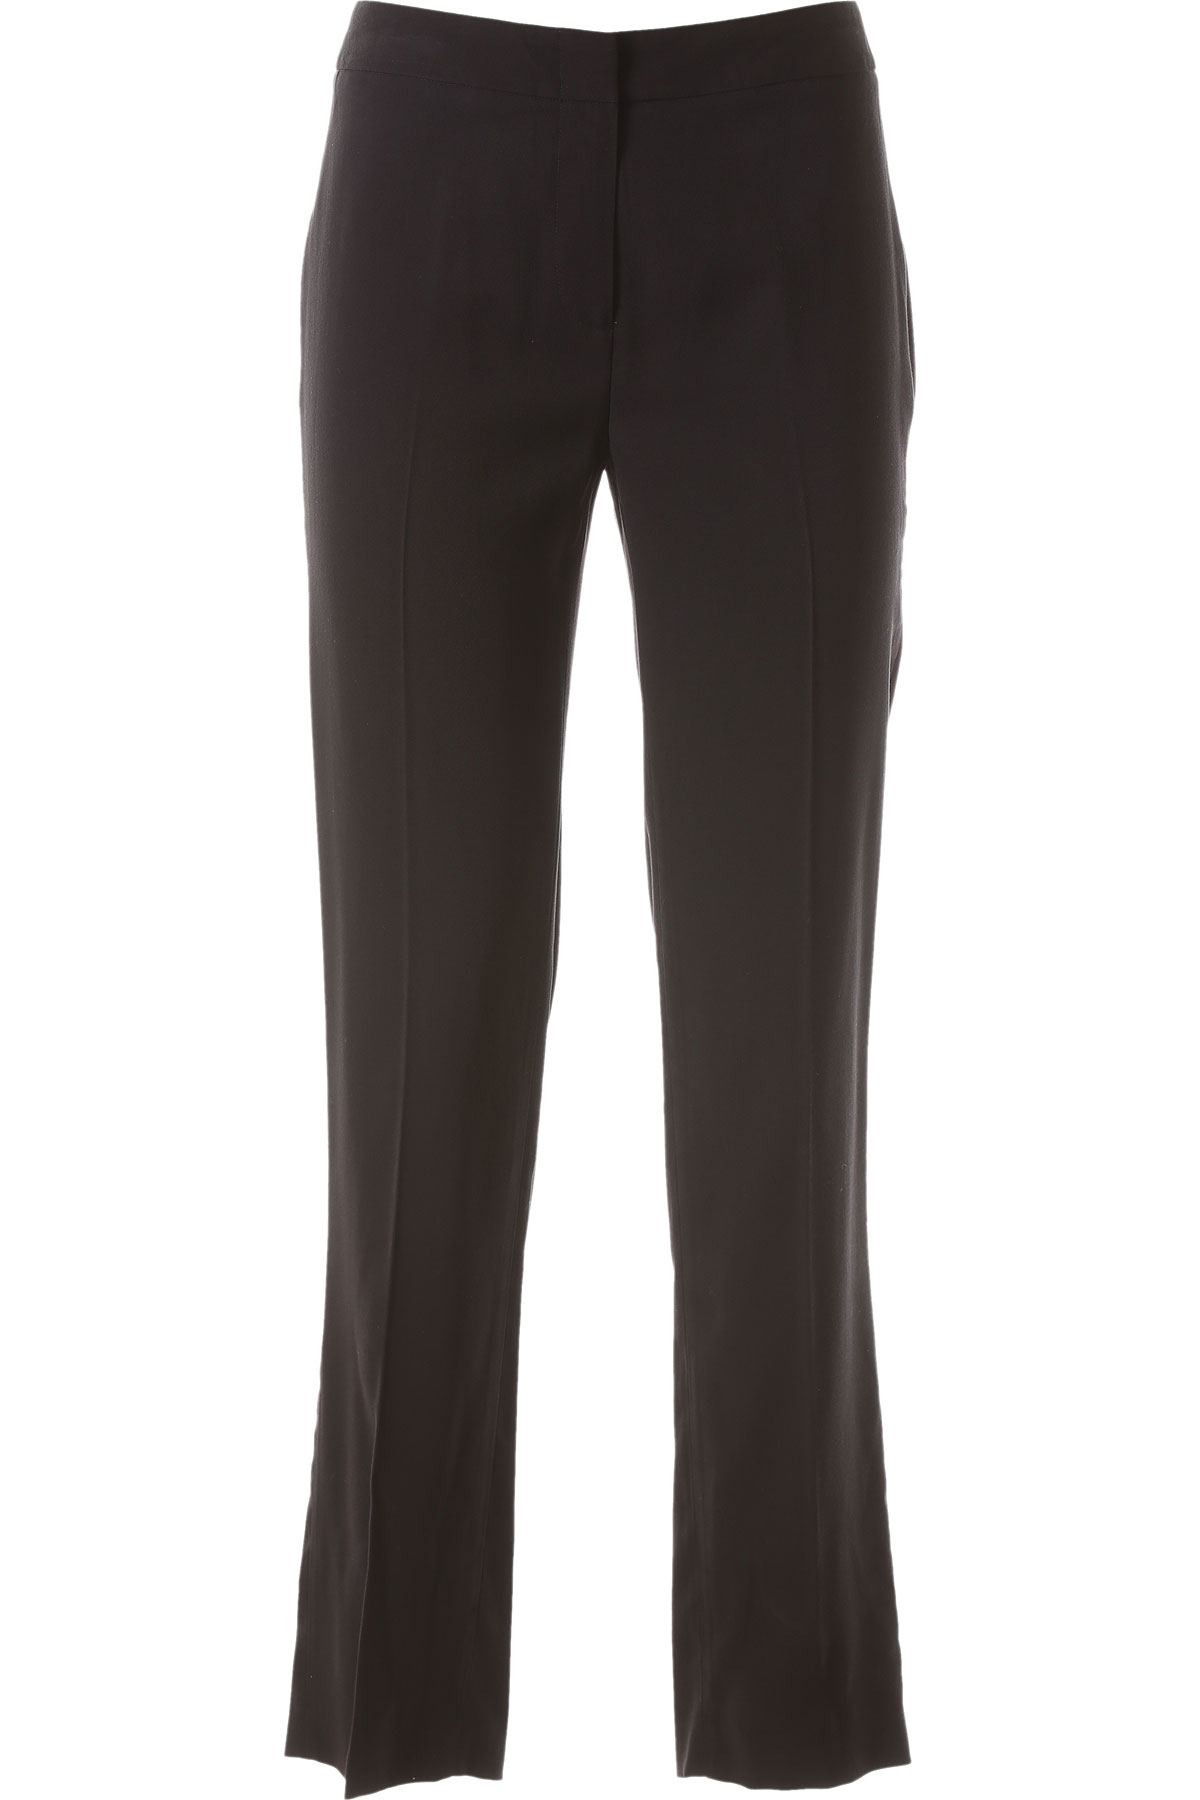 Federica Tosi Pants for Women On Sale, Black, viscosa, 2019, 26 4 8